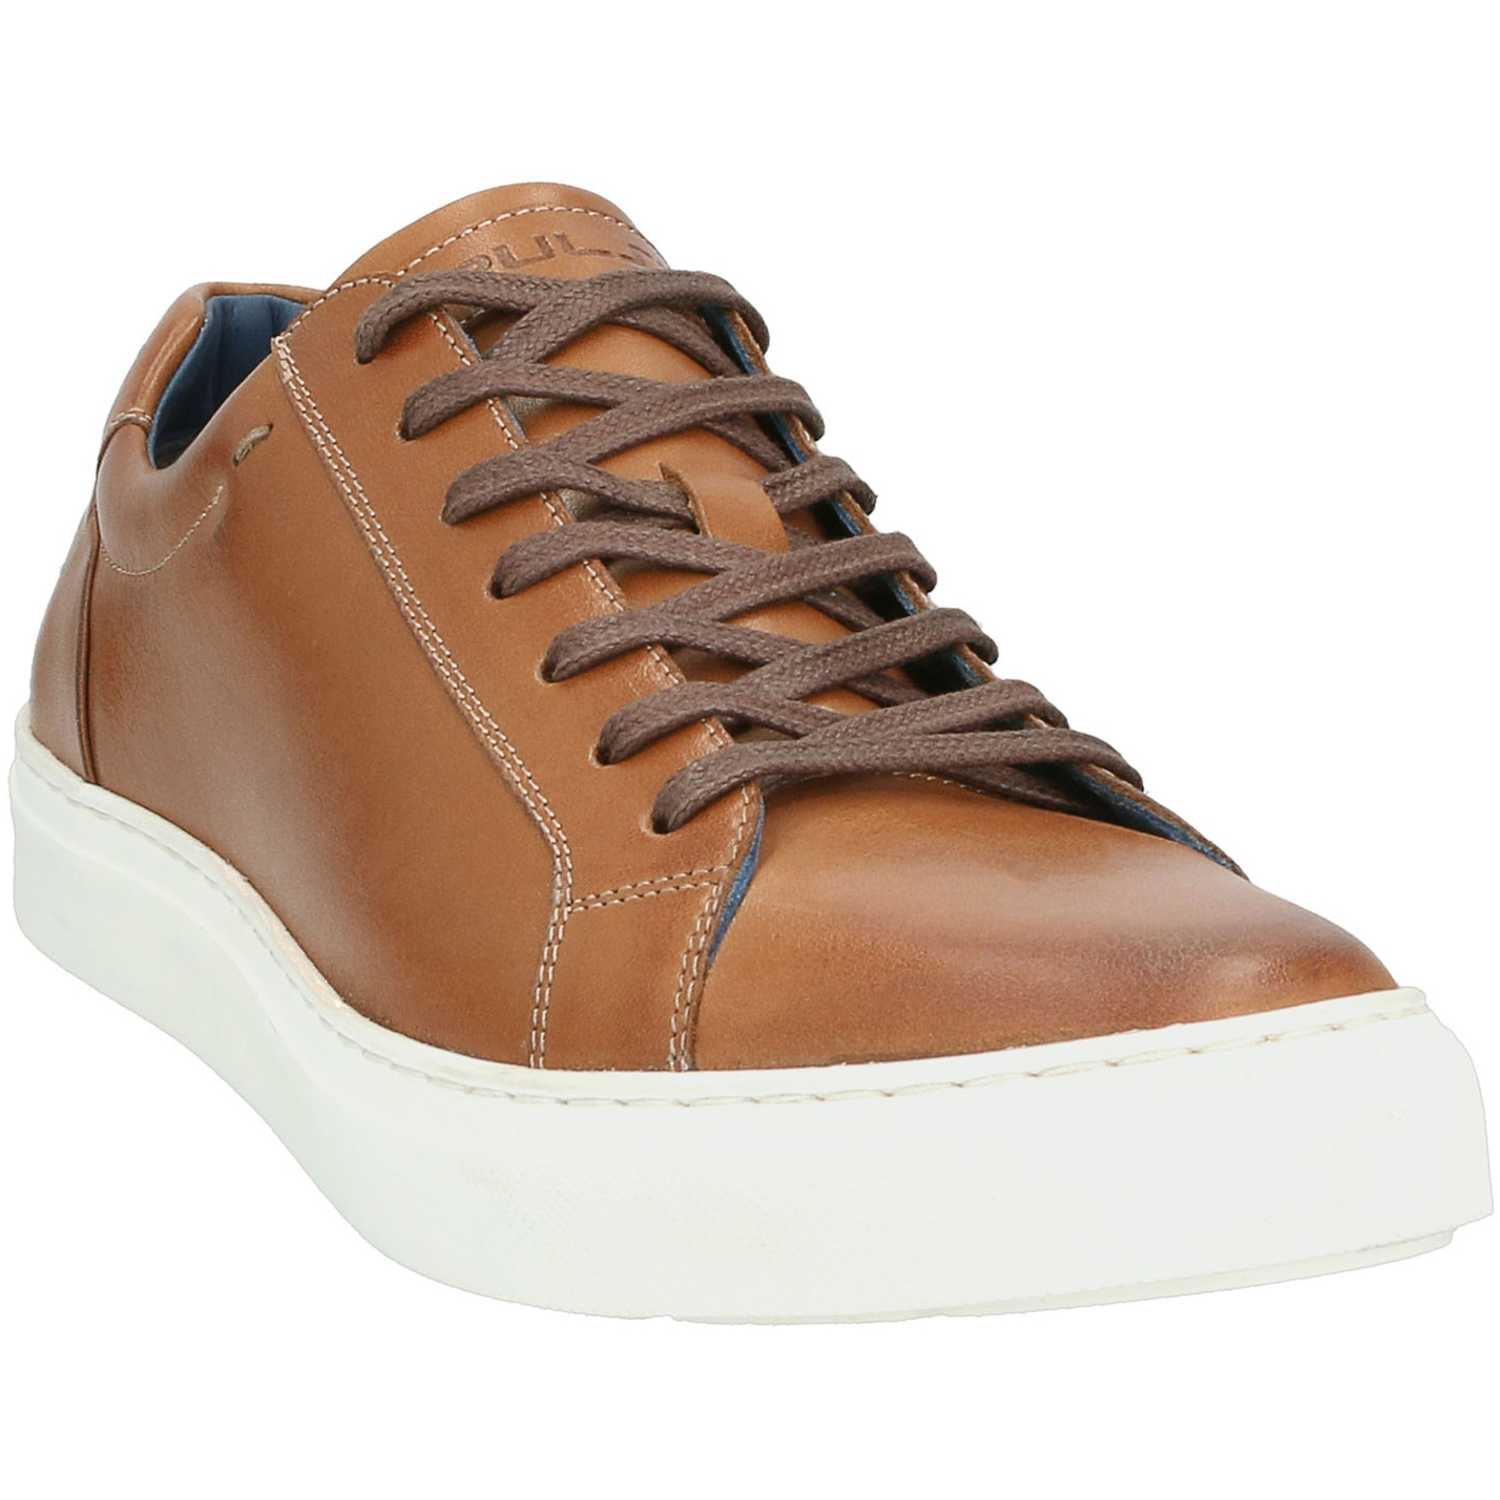 GUANTE LYON Camel Zapatillas Fashion